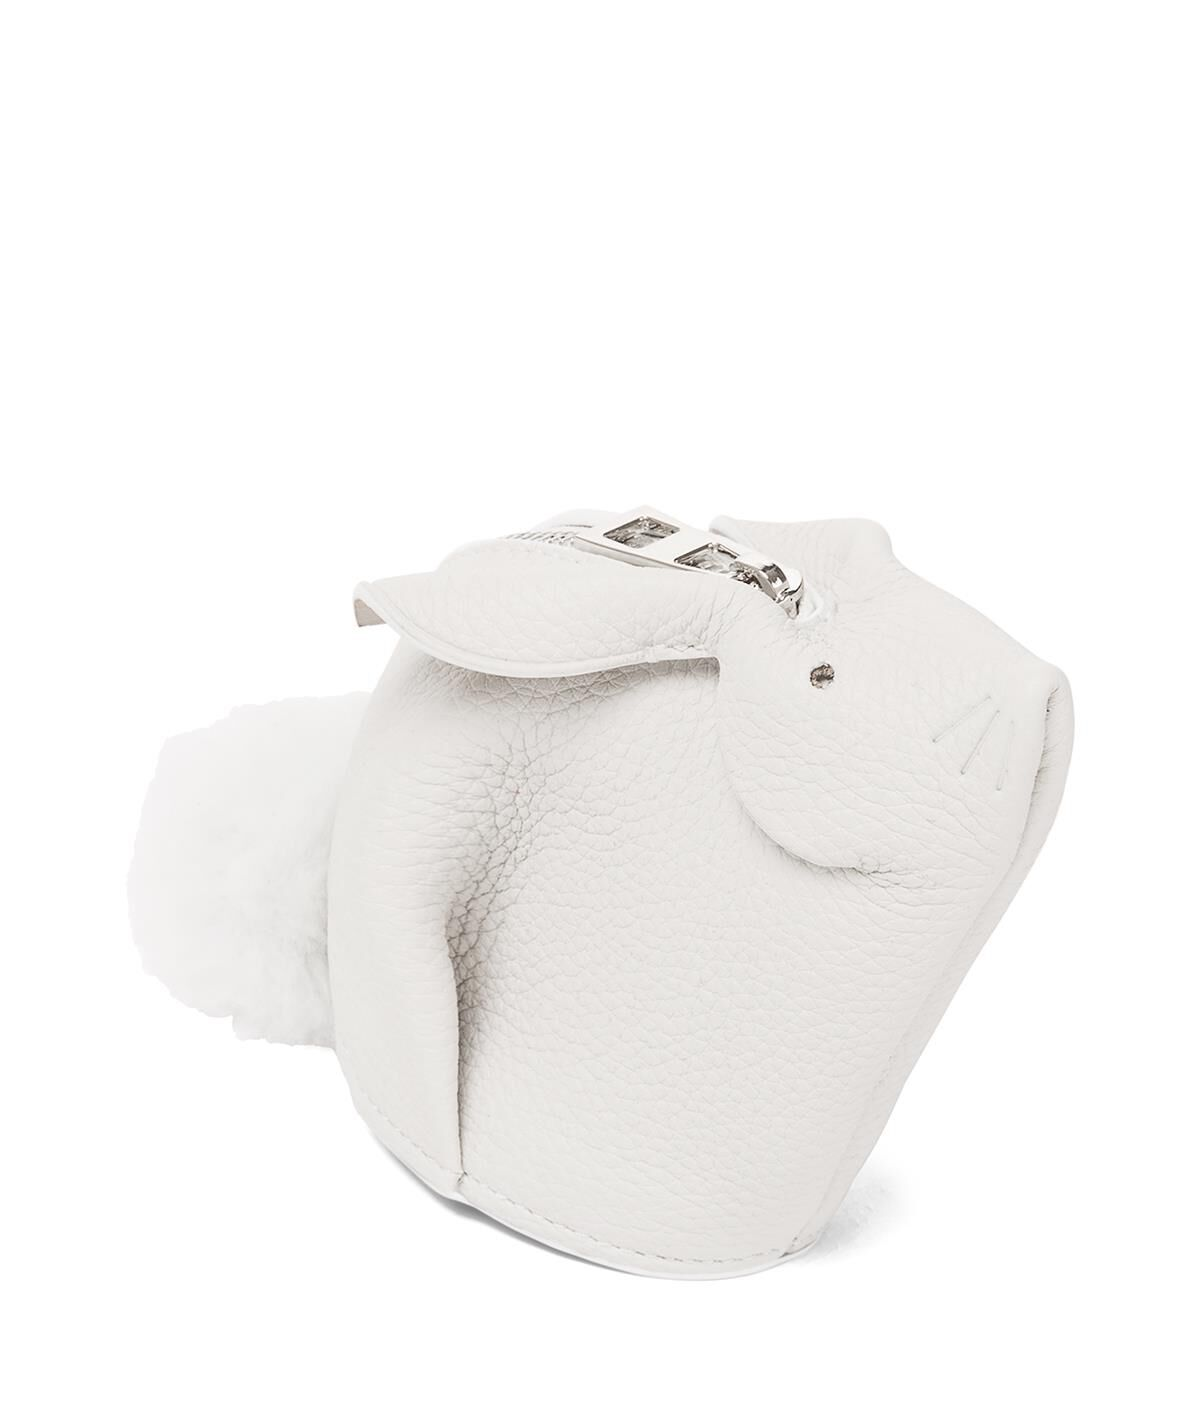 LOEWE Bunny Coin Purse White all